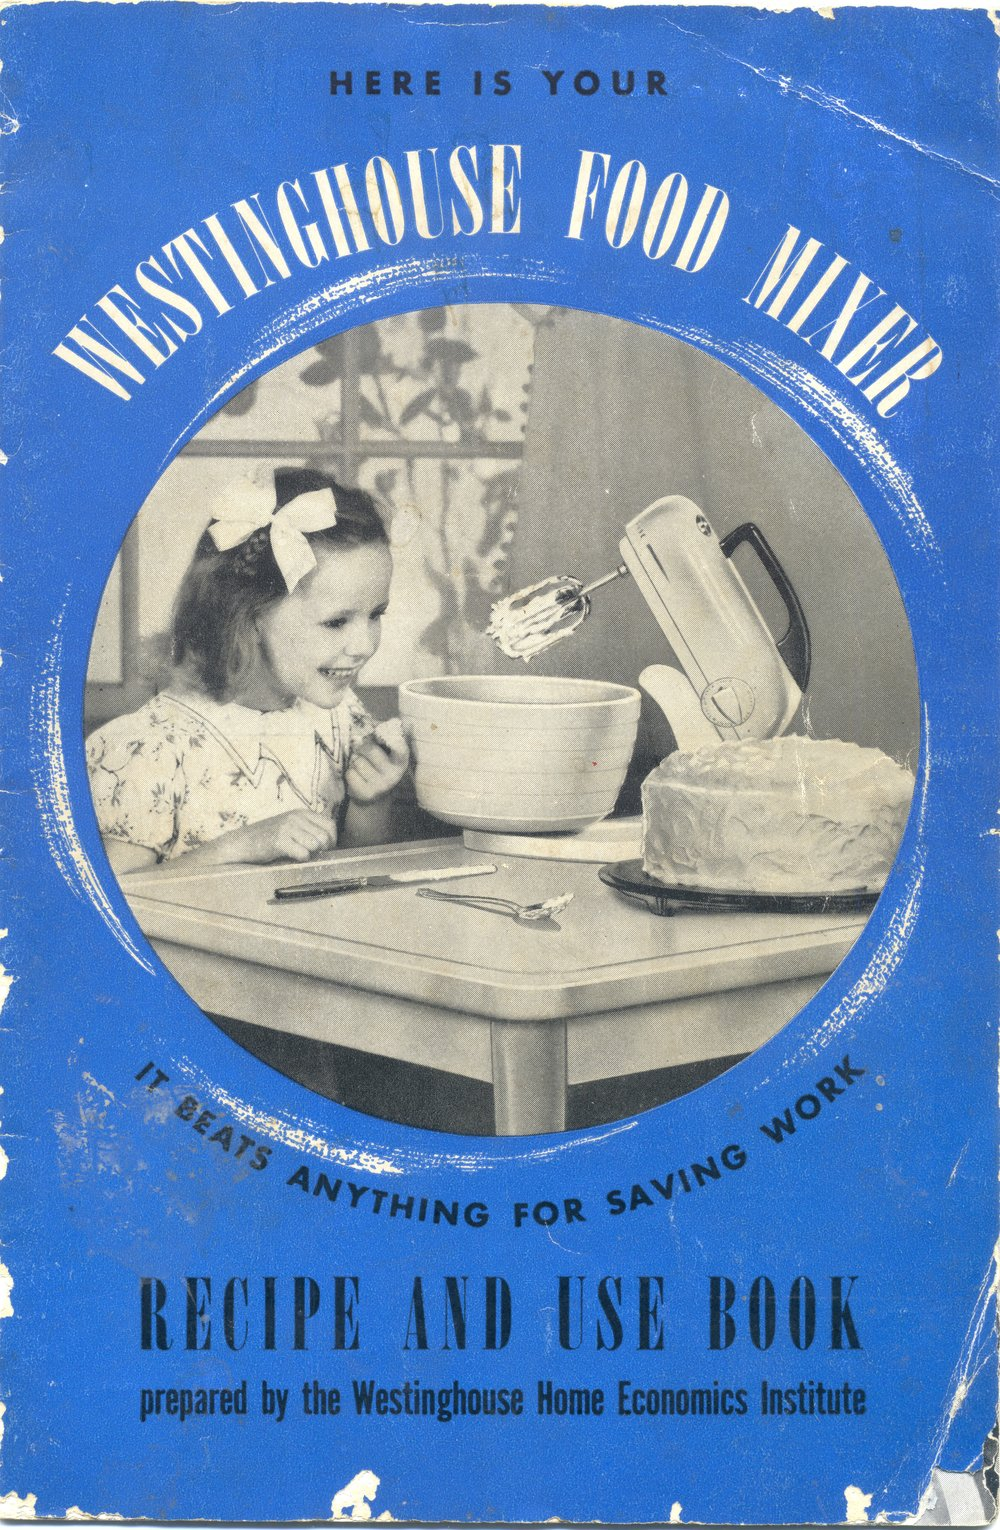 An undated Westinghouse food mixer booklet